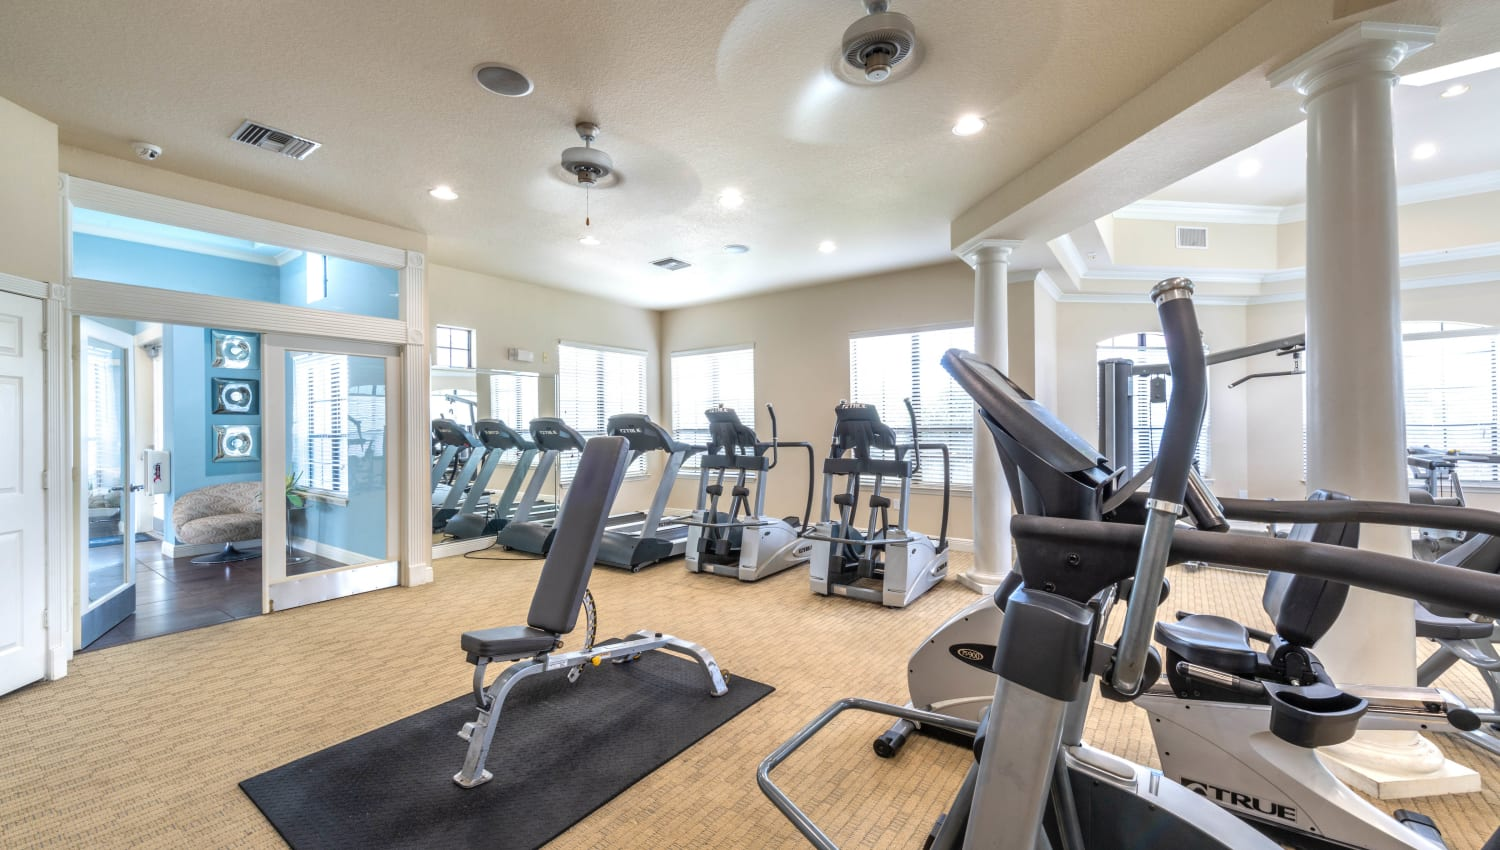 Plenty of equipment for everyone in the fitness center at Mirador & Stovall at River City in Jacksonville, Florida